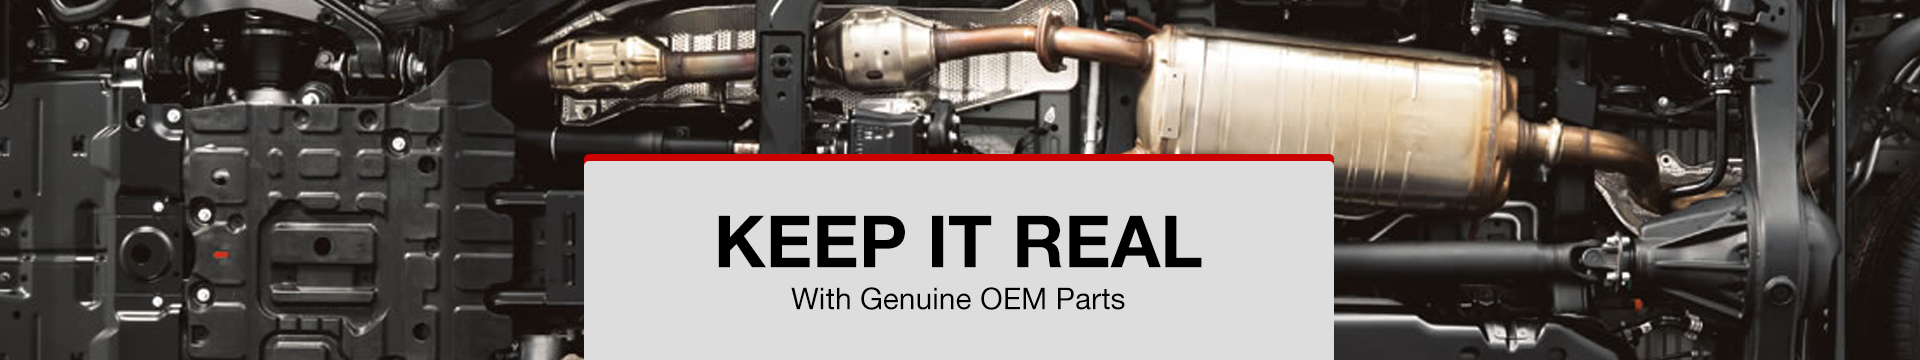 OEM Part Source Banner 1